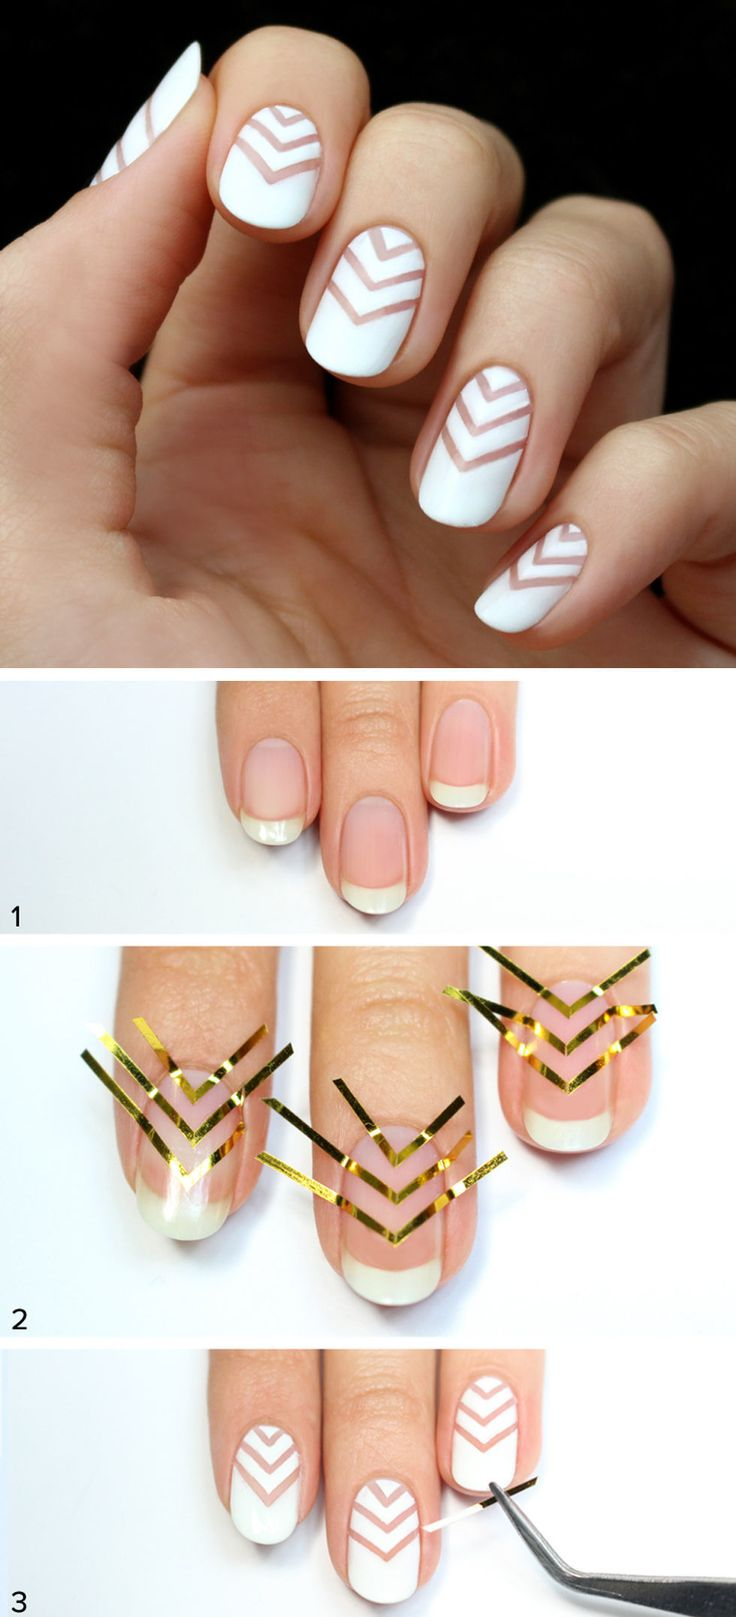 Best 10+ Easy Nail Designs Ideas On Pinterest | Easy Nail Art, Diy Nails  And Diy Nail Designs